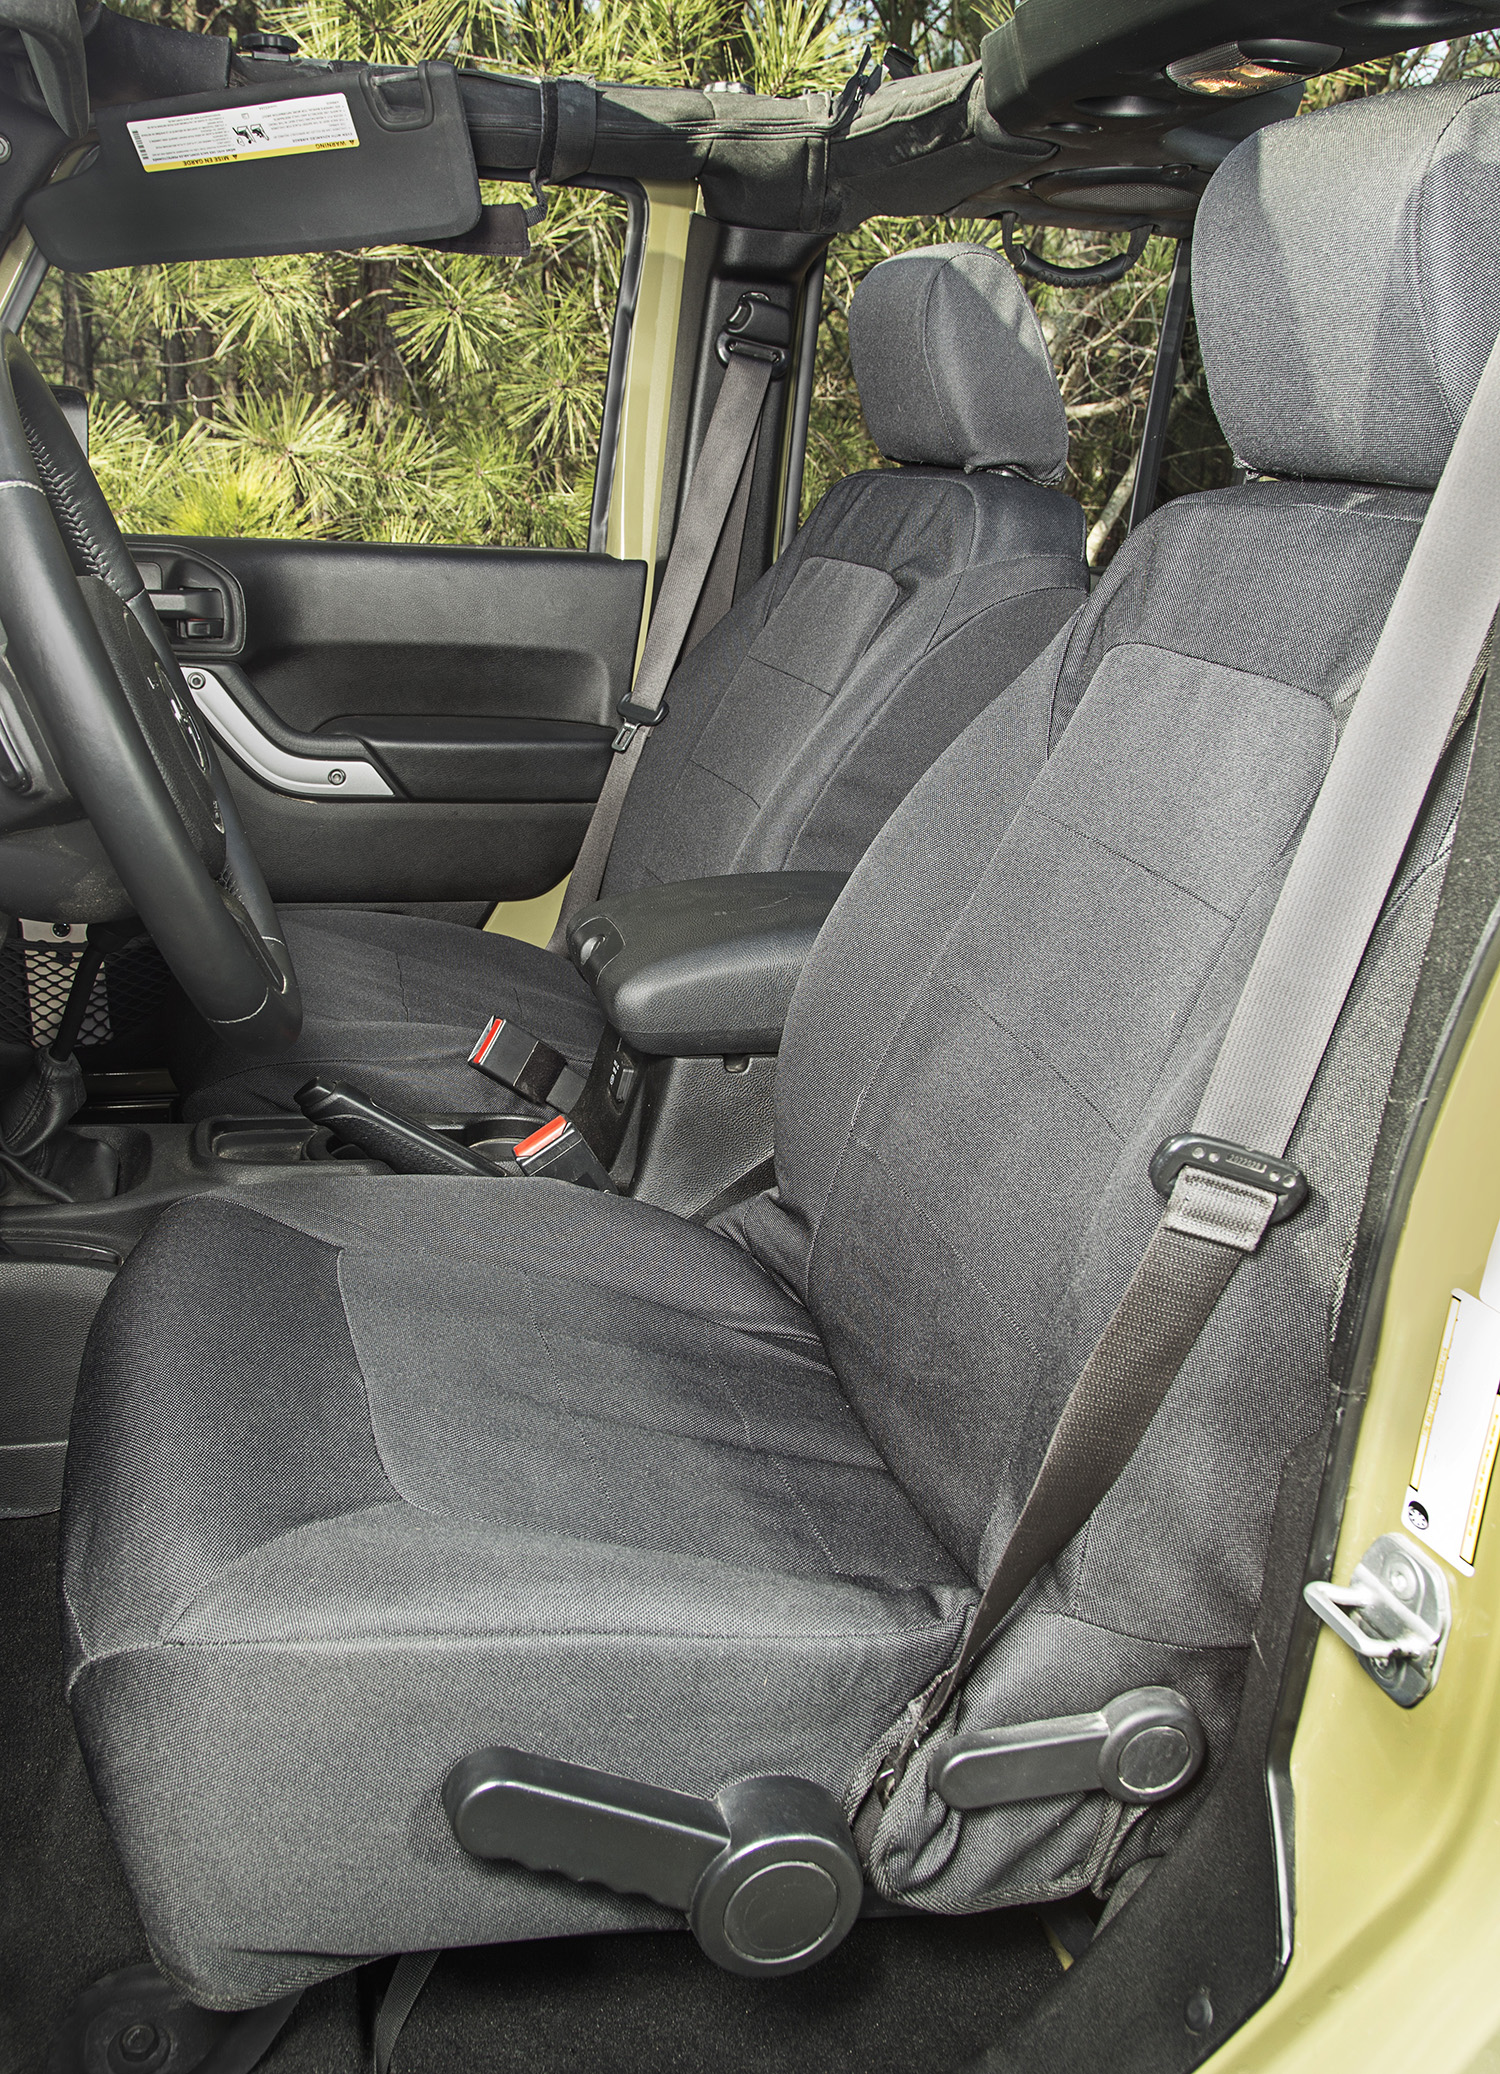 Astonishing Jeep Jk Seat Belt Cover Belt Image And Picture Gamerscity Chair Design For Home Gamerscityorg